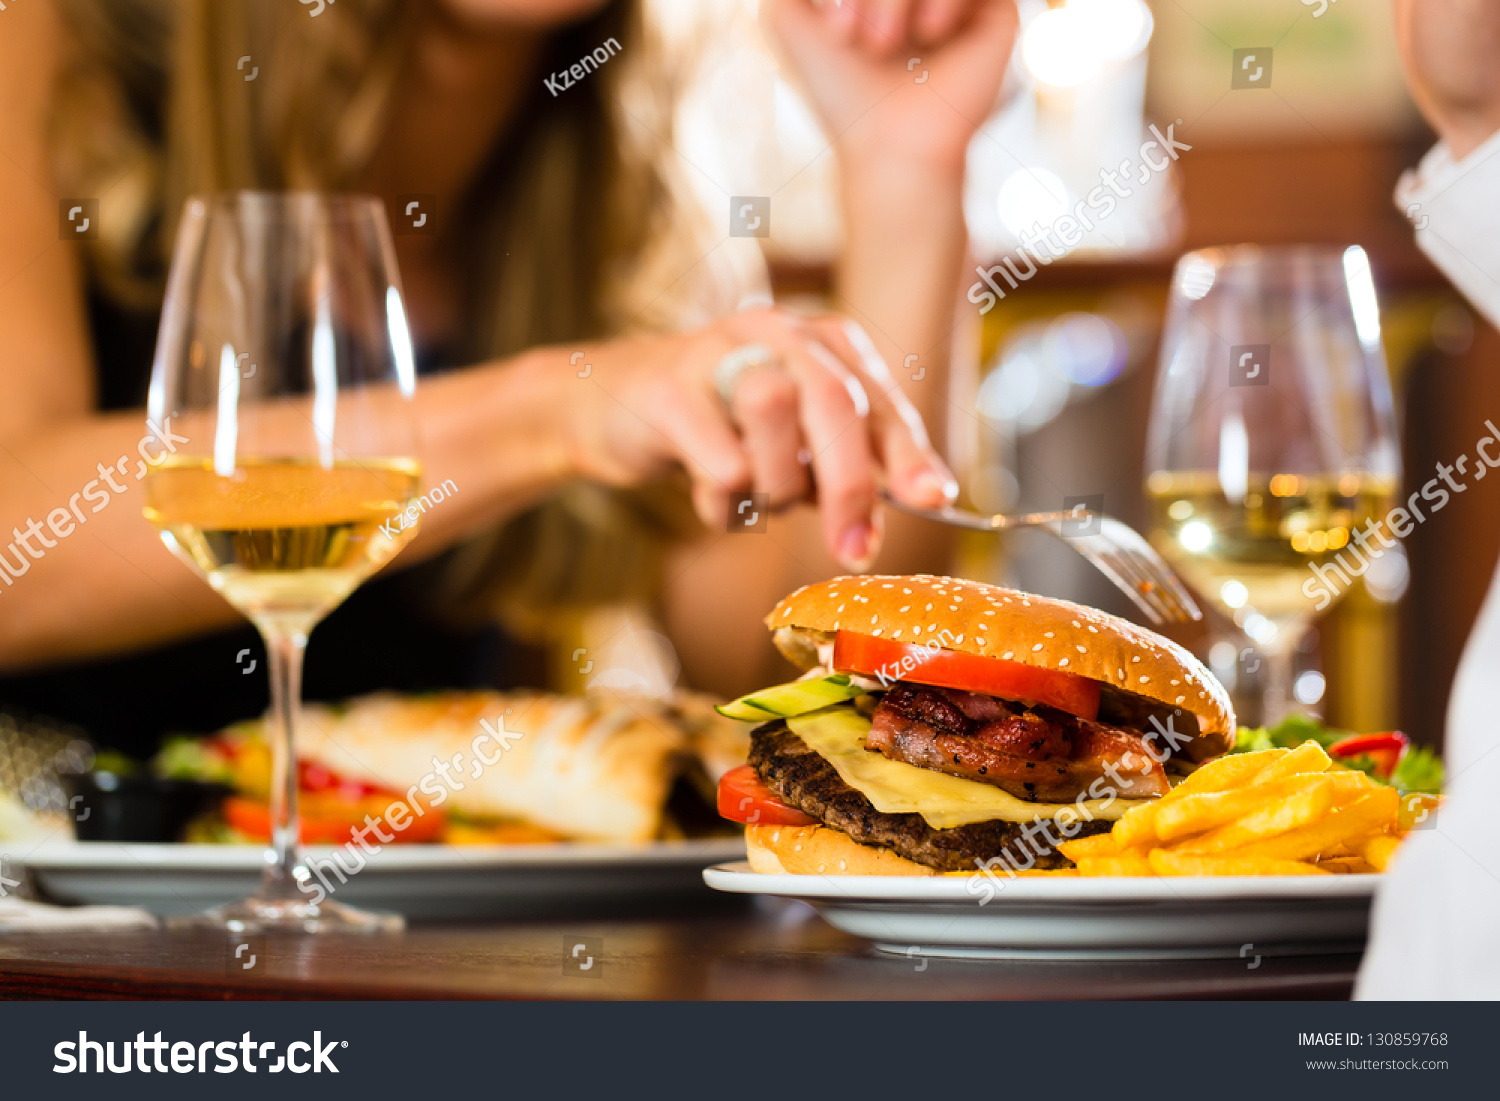 fast food and fine dining Free essay: english 101 9 september 2013 word count 706 fine dinning vs fast food the experience of working in the restaurant business can vary greatly.